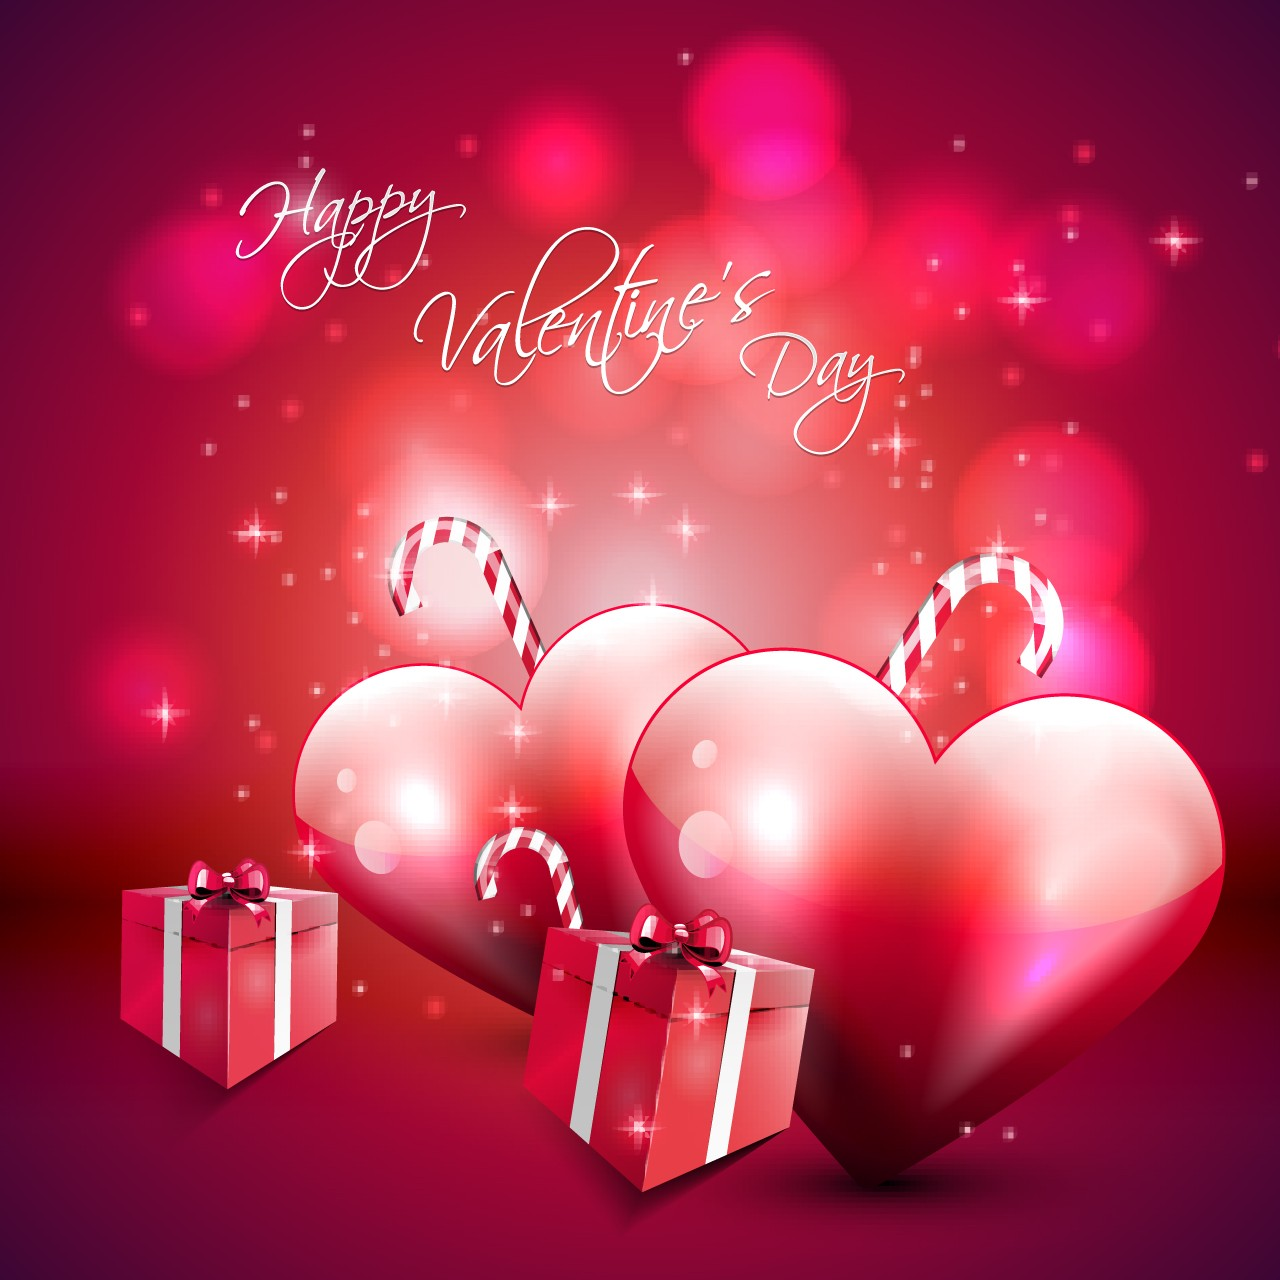 Happy Valentines Day Love Heart Flower Hd Wallpaper